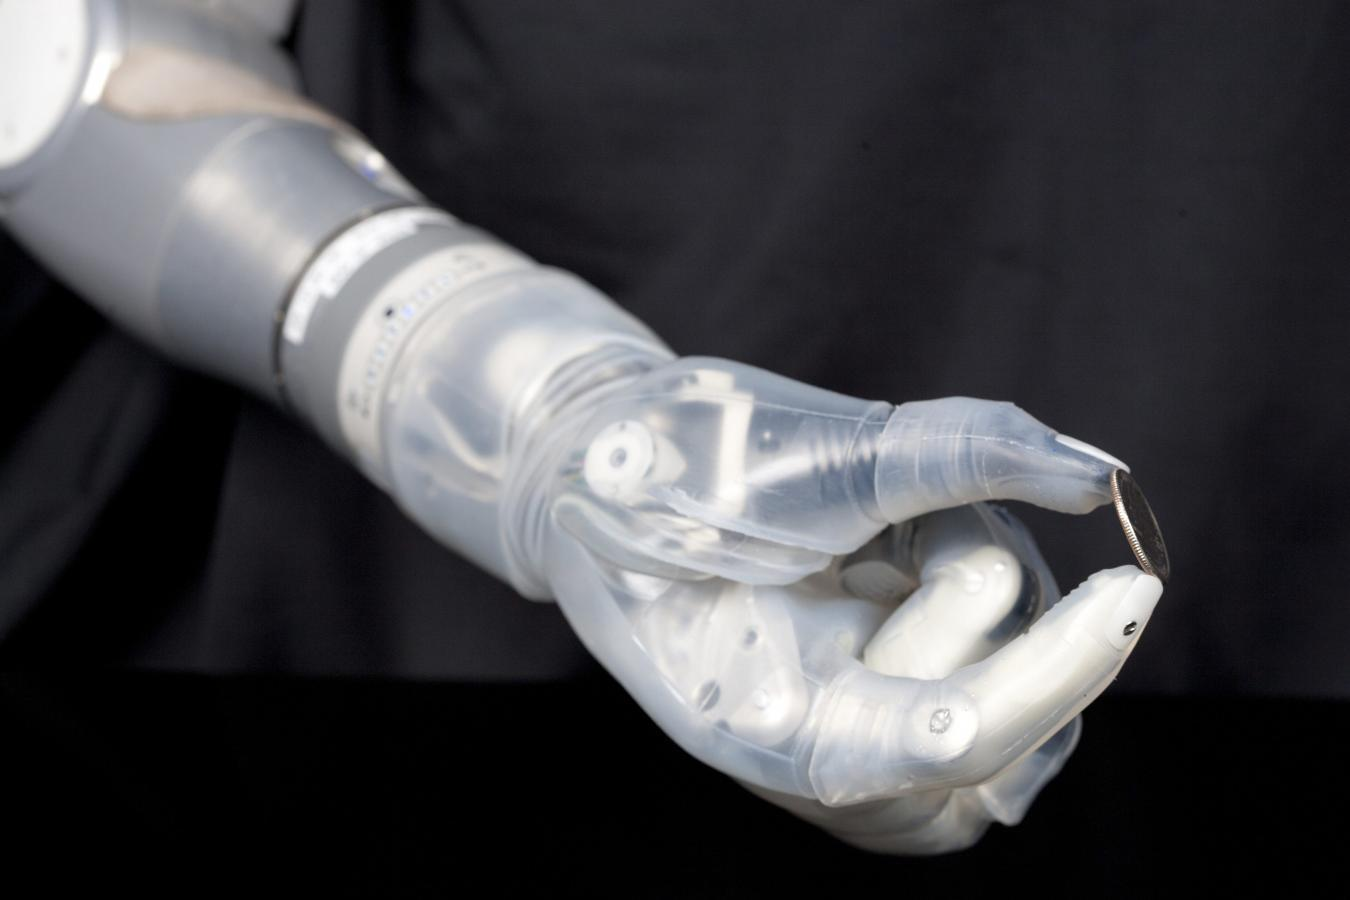 U.S. FDA approves 'Star Wars' robotic arm for amputees